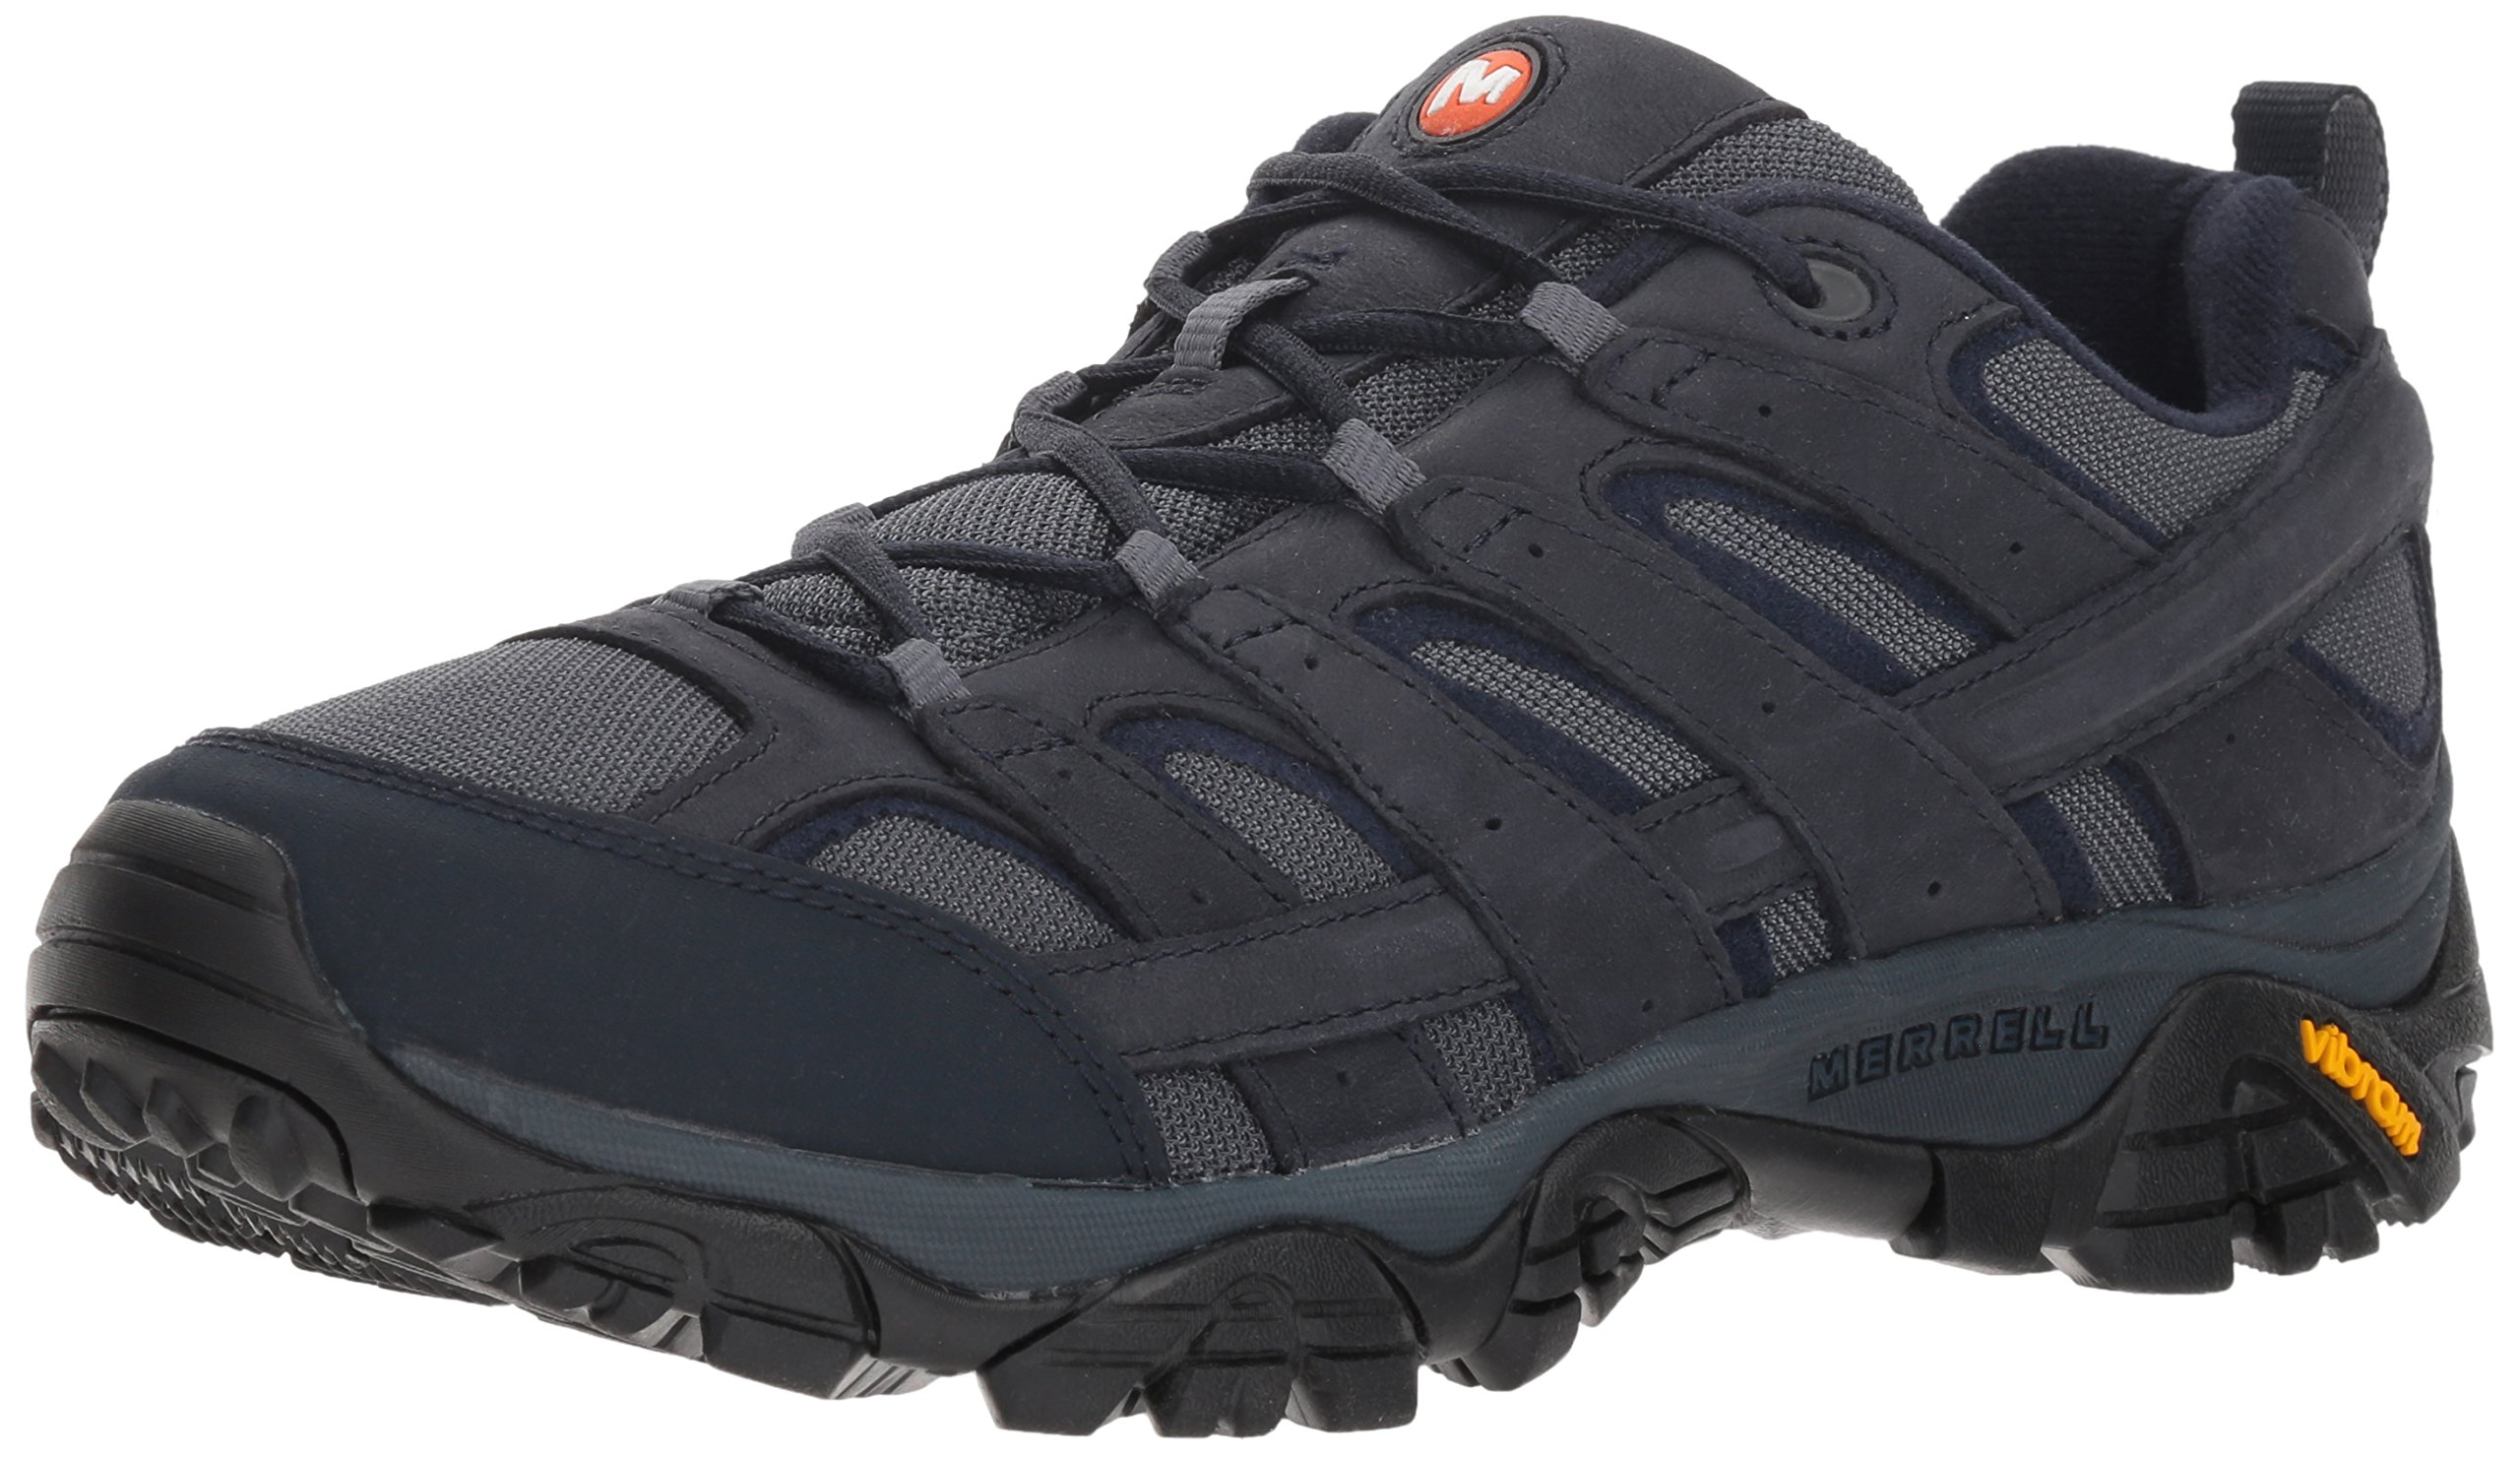 Merrell Men's Moab 2 Smooth Hiking Boot, Navy, 7 M US